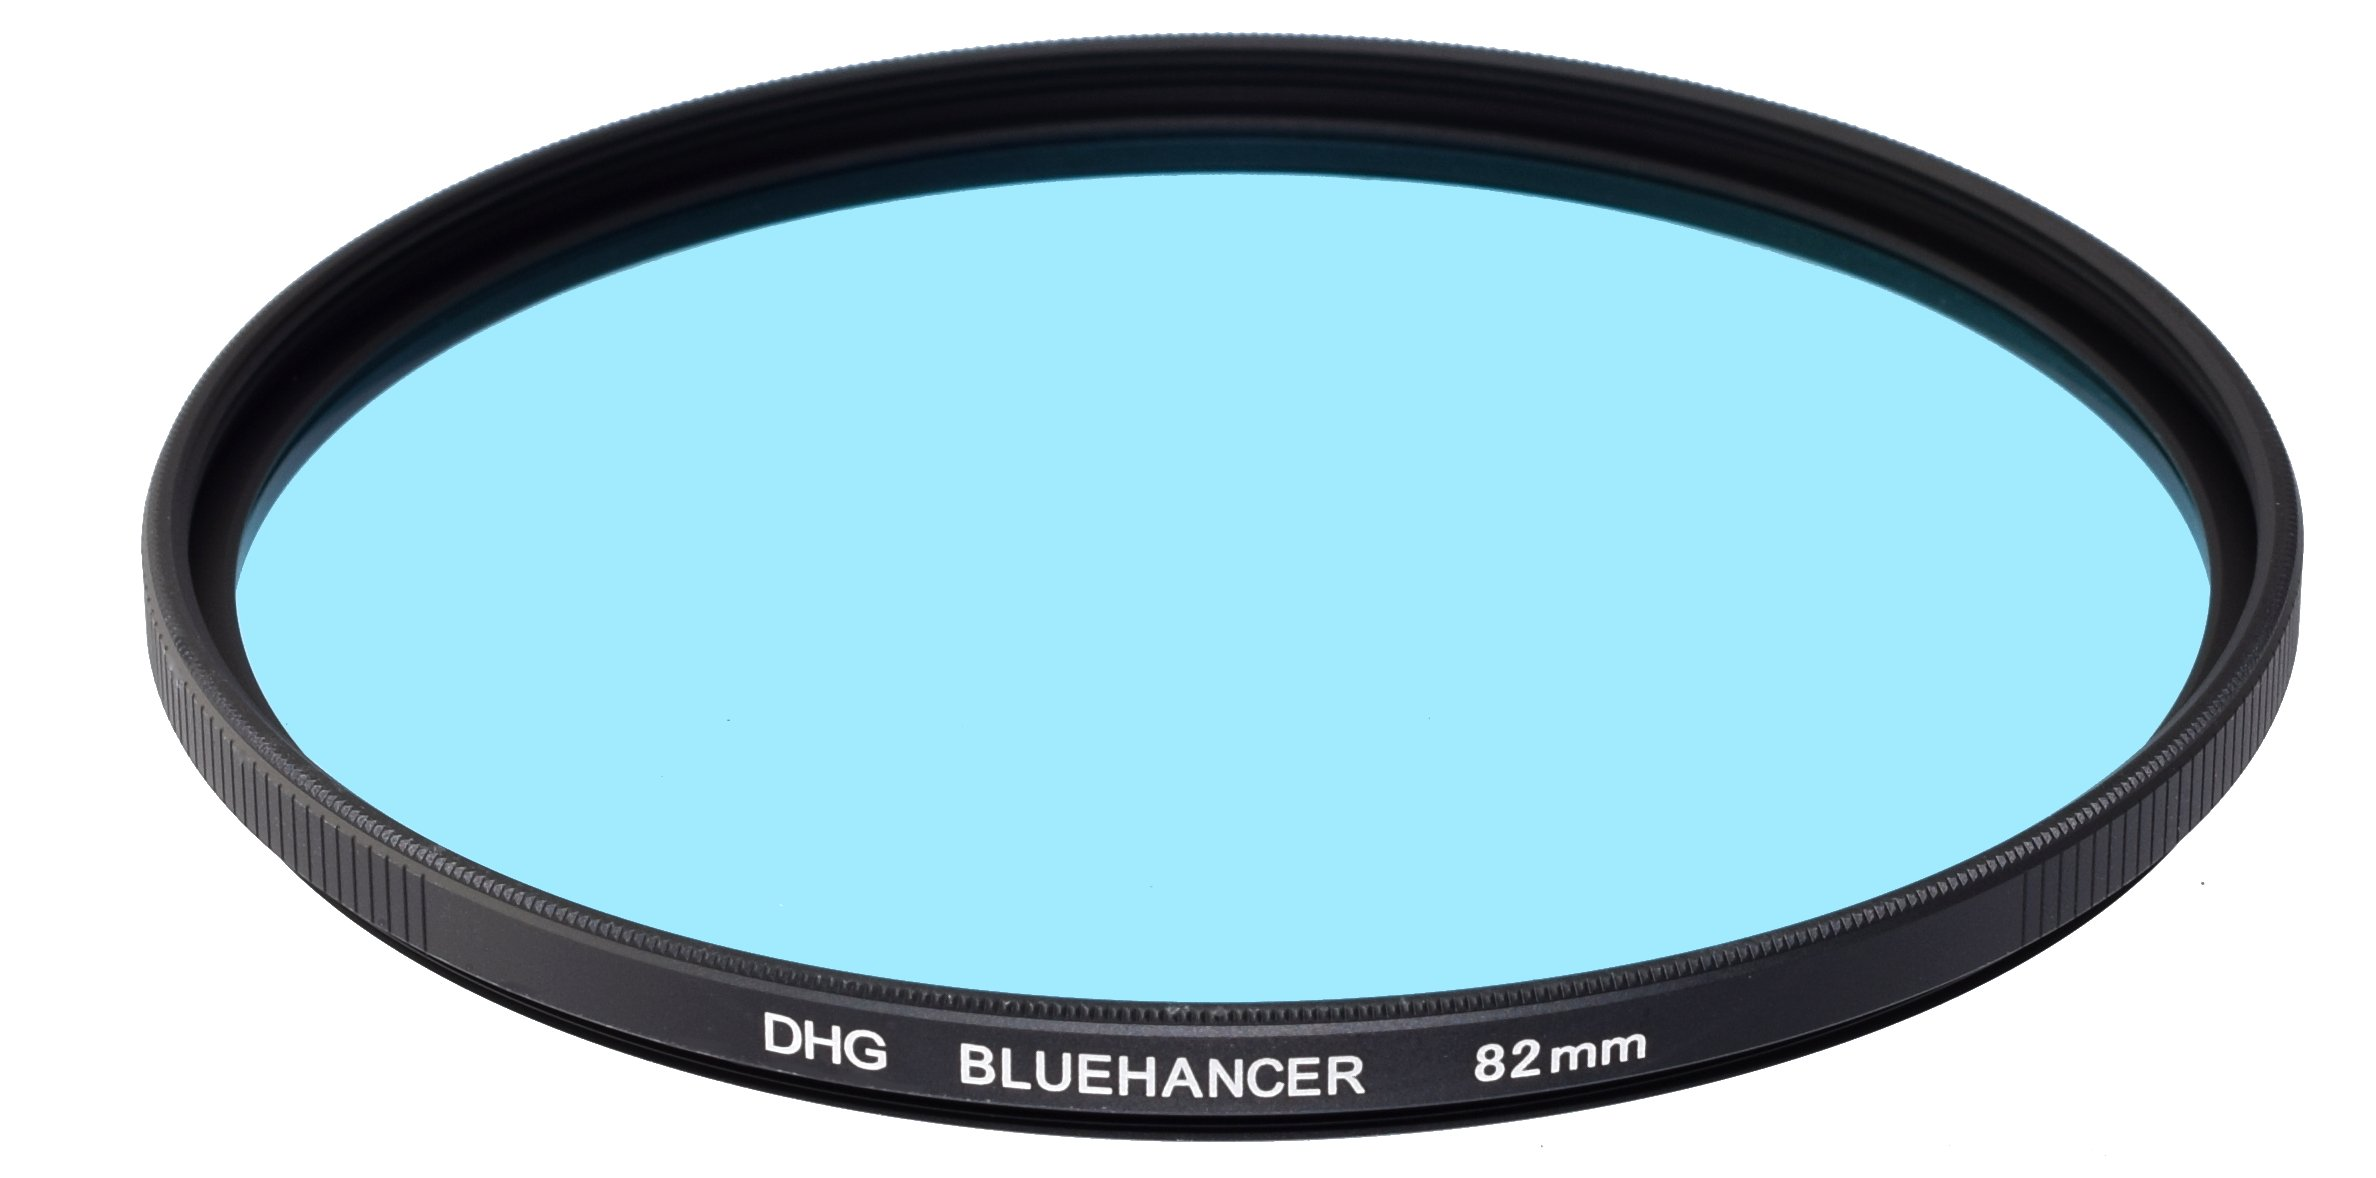 Marumi 82mm Bluehancer Light Pollution Filter DHG 82 Made in Japan by Marumi